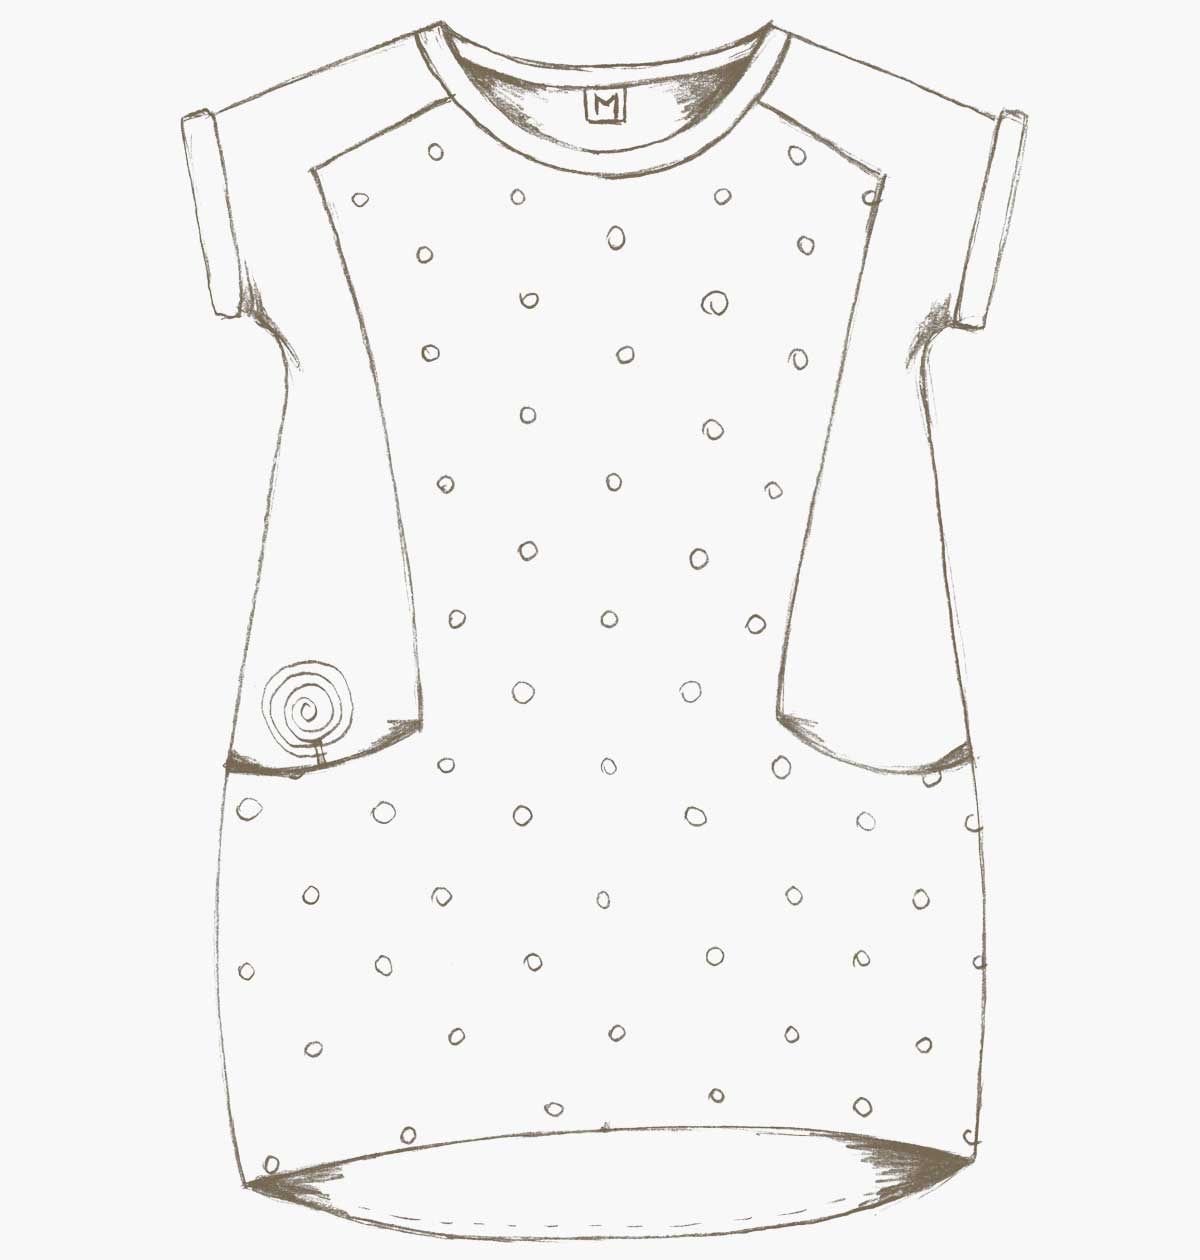 The Nore Dress and T-shirt sewing pattern | Compagnie-M